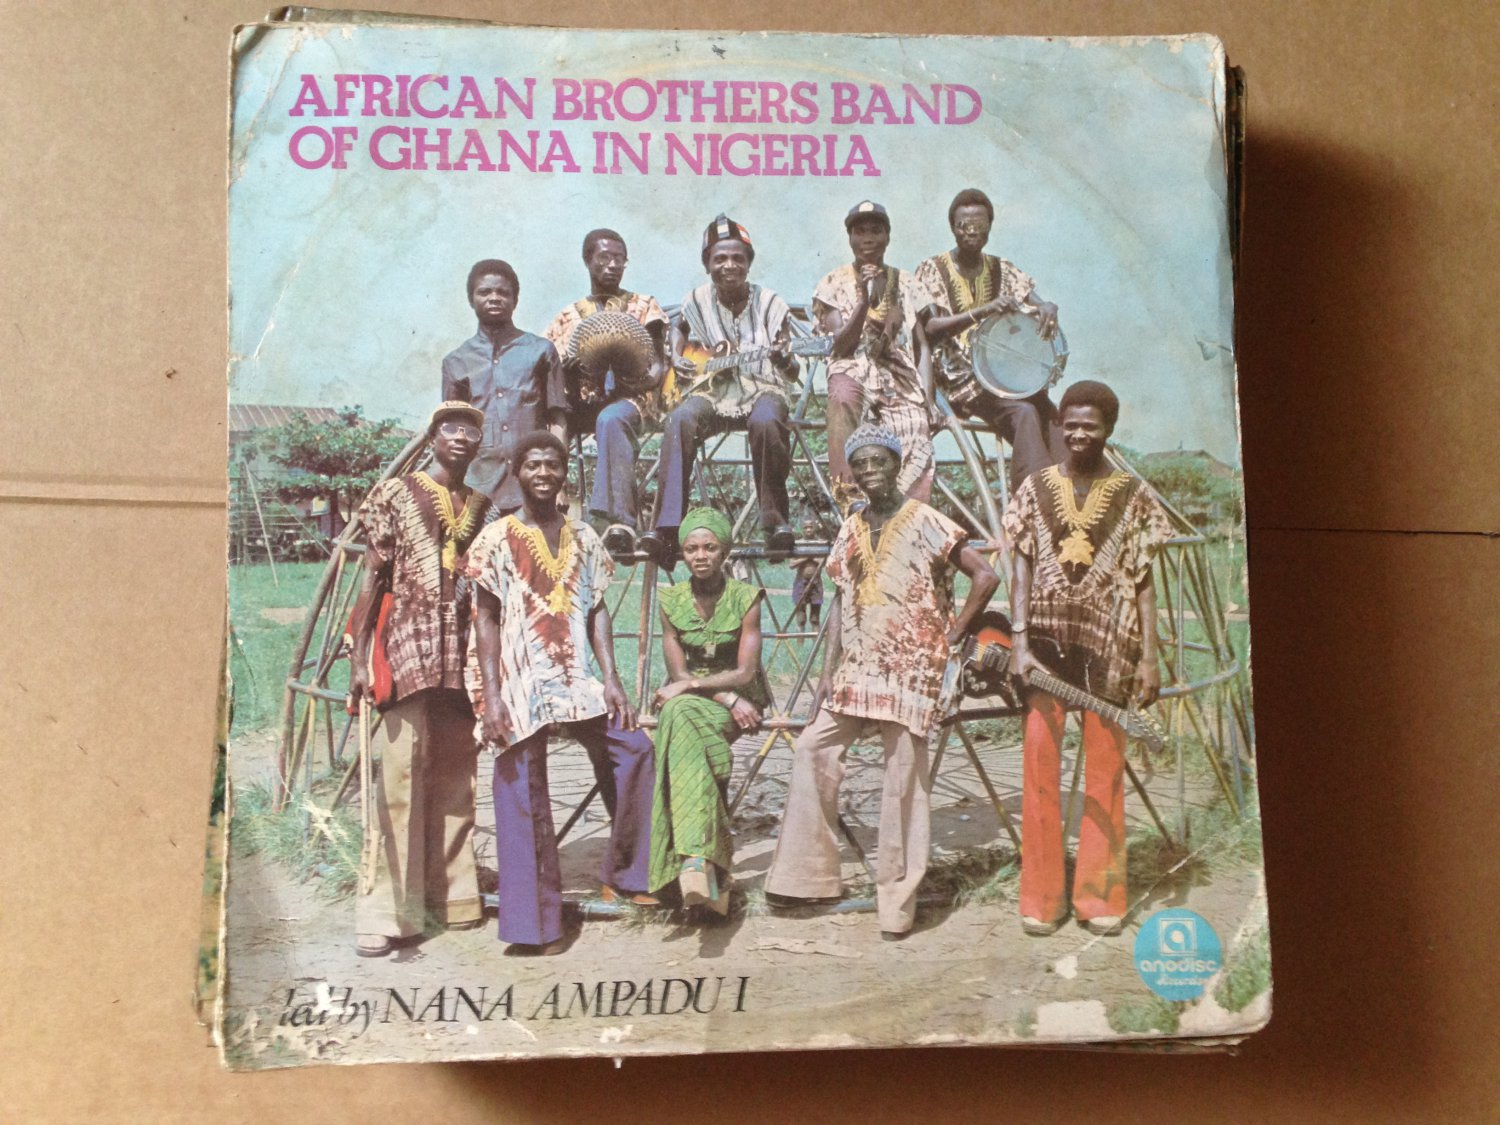 AFRICAN BROTHERS BAND LP obaa dommere HIGHLIFE ORGAN mp3 LISTEN